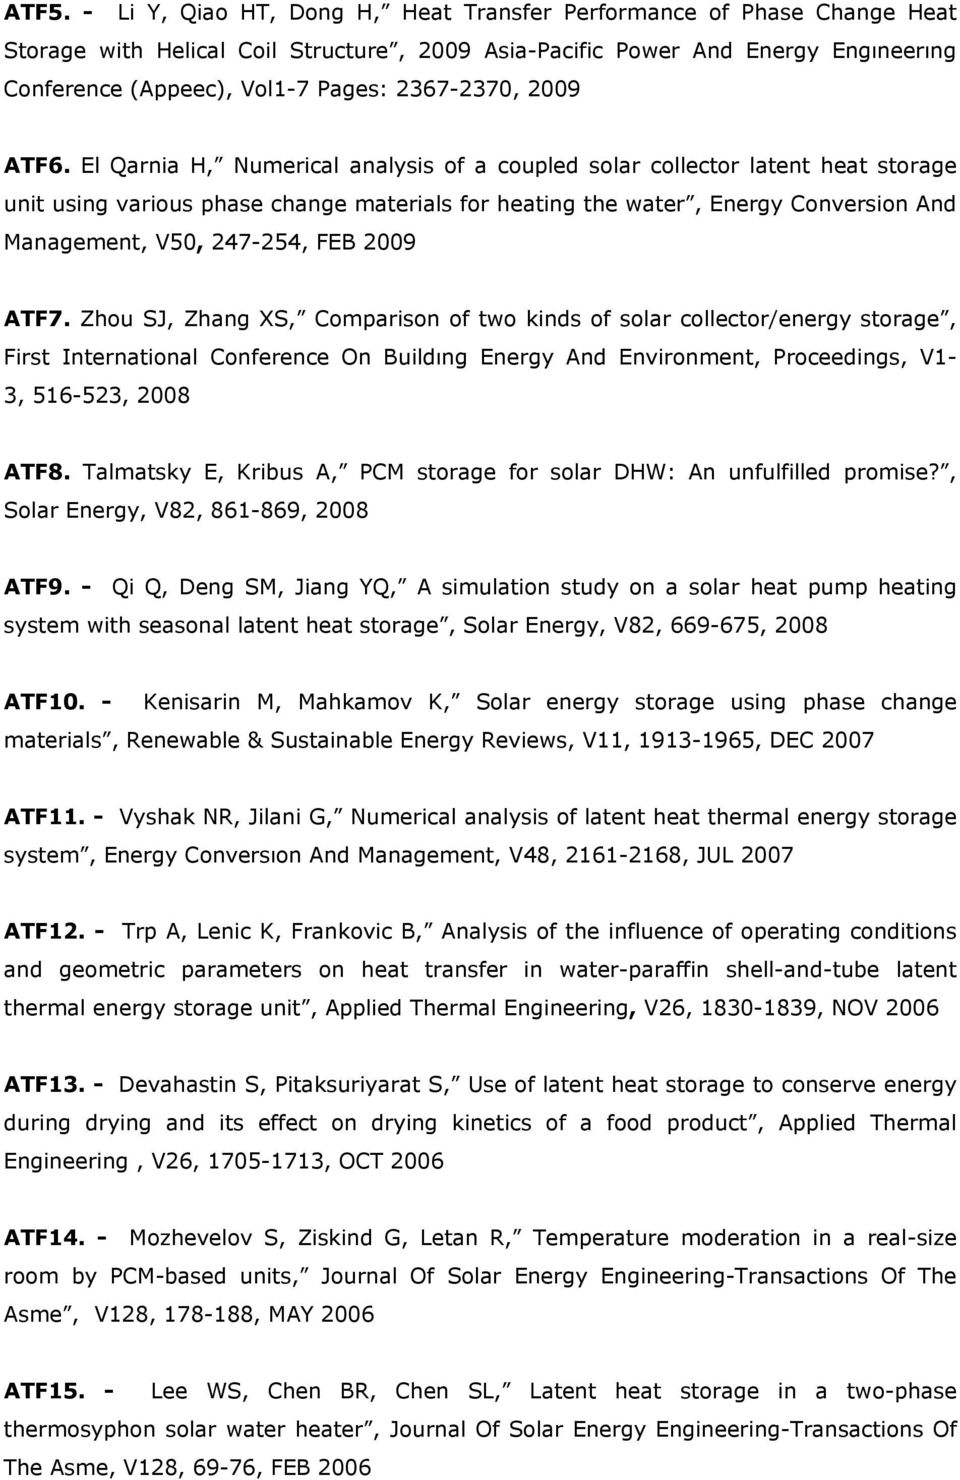 El Qarnia H, Numerical analysis of a coupled solar collector latent heat storage unit using various phase change materials for heating the water, Energy Conversion And Management, V50, 247-254, FEB